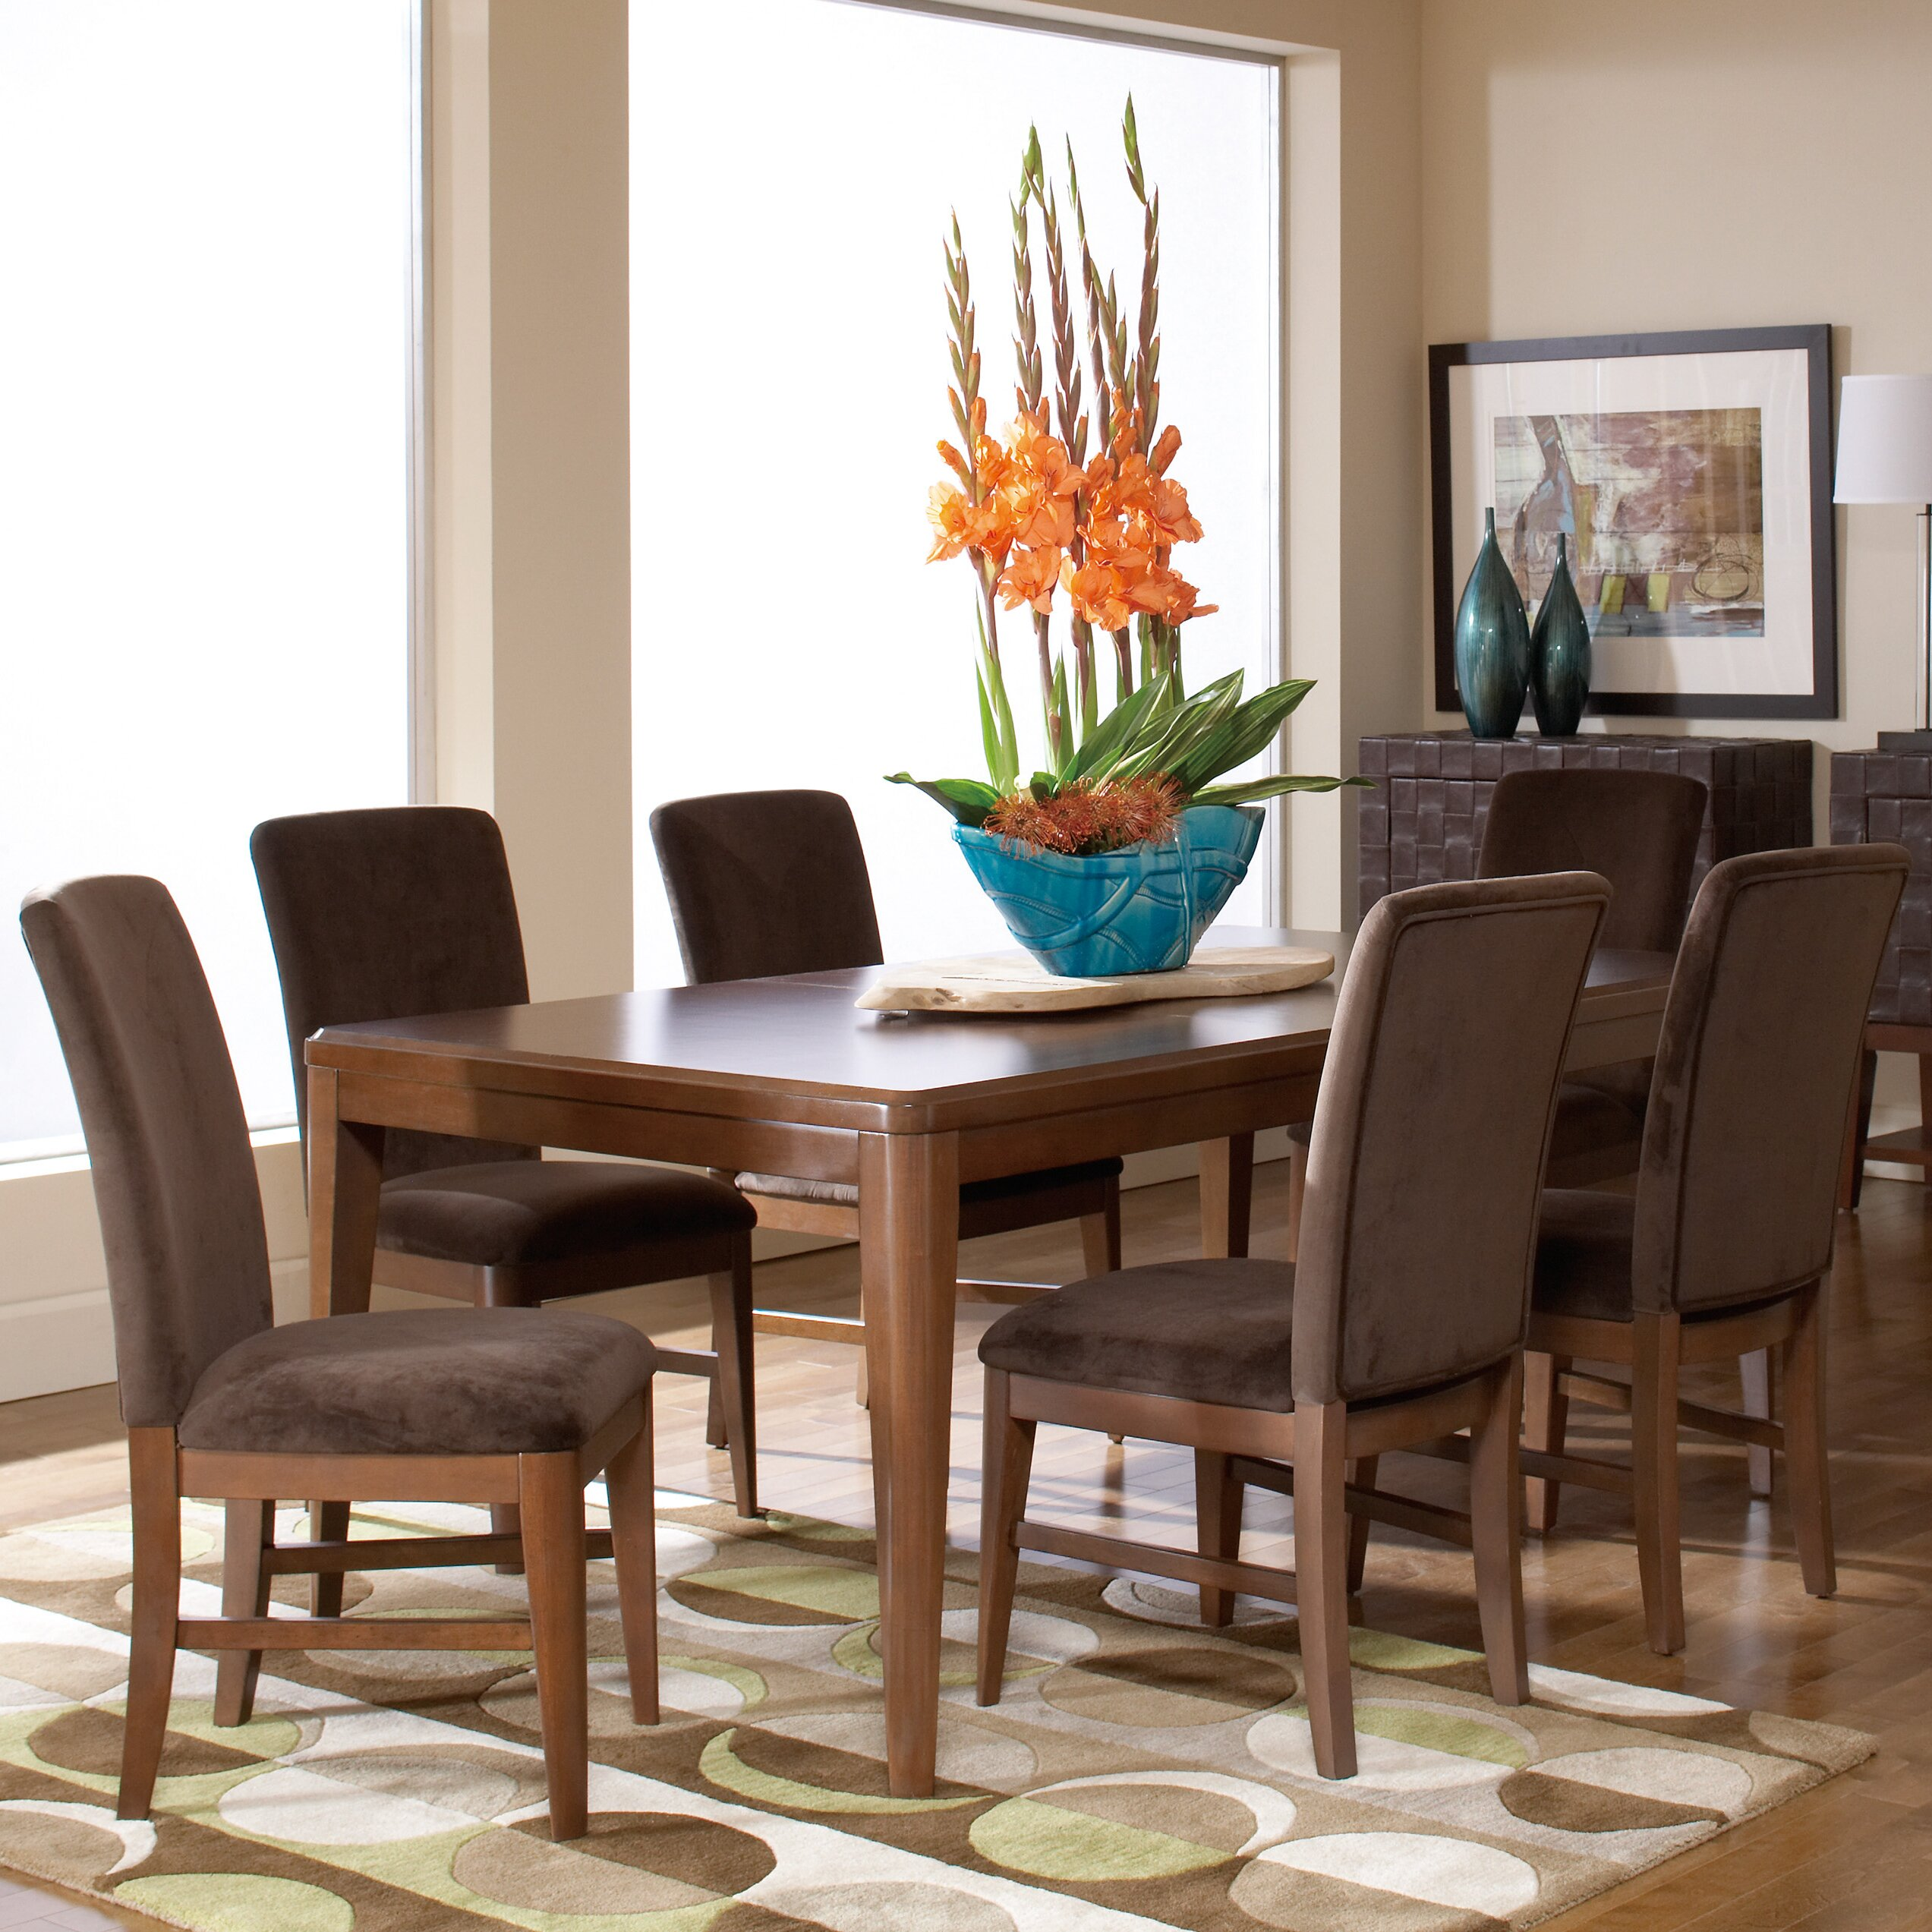 Woodhaven Living Room Furniture Woodhaven Hill Beaumont 7 Piece Dining Set Wayfairca